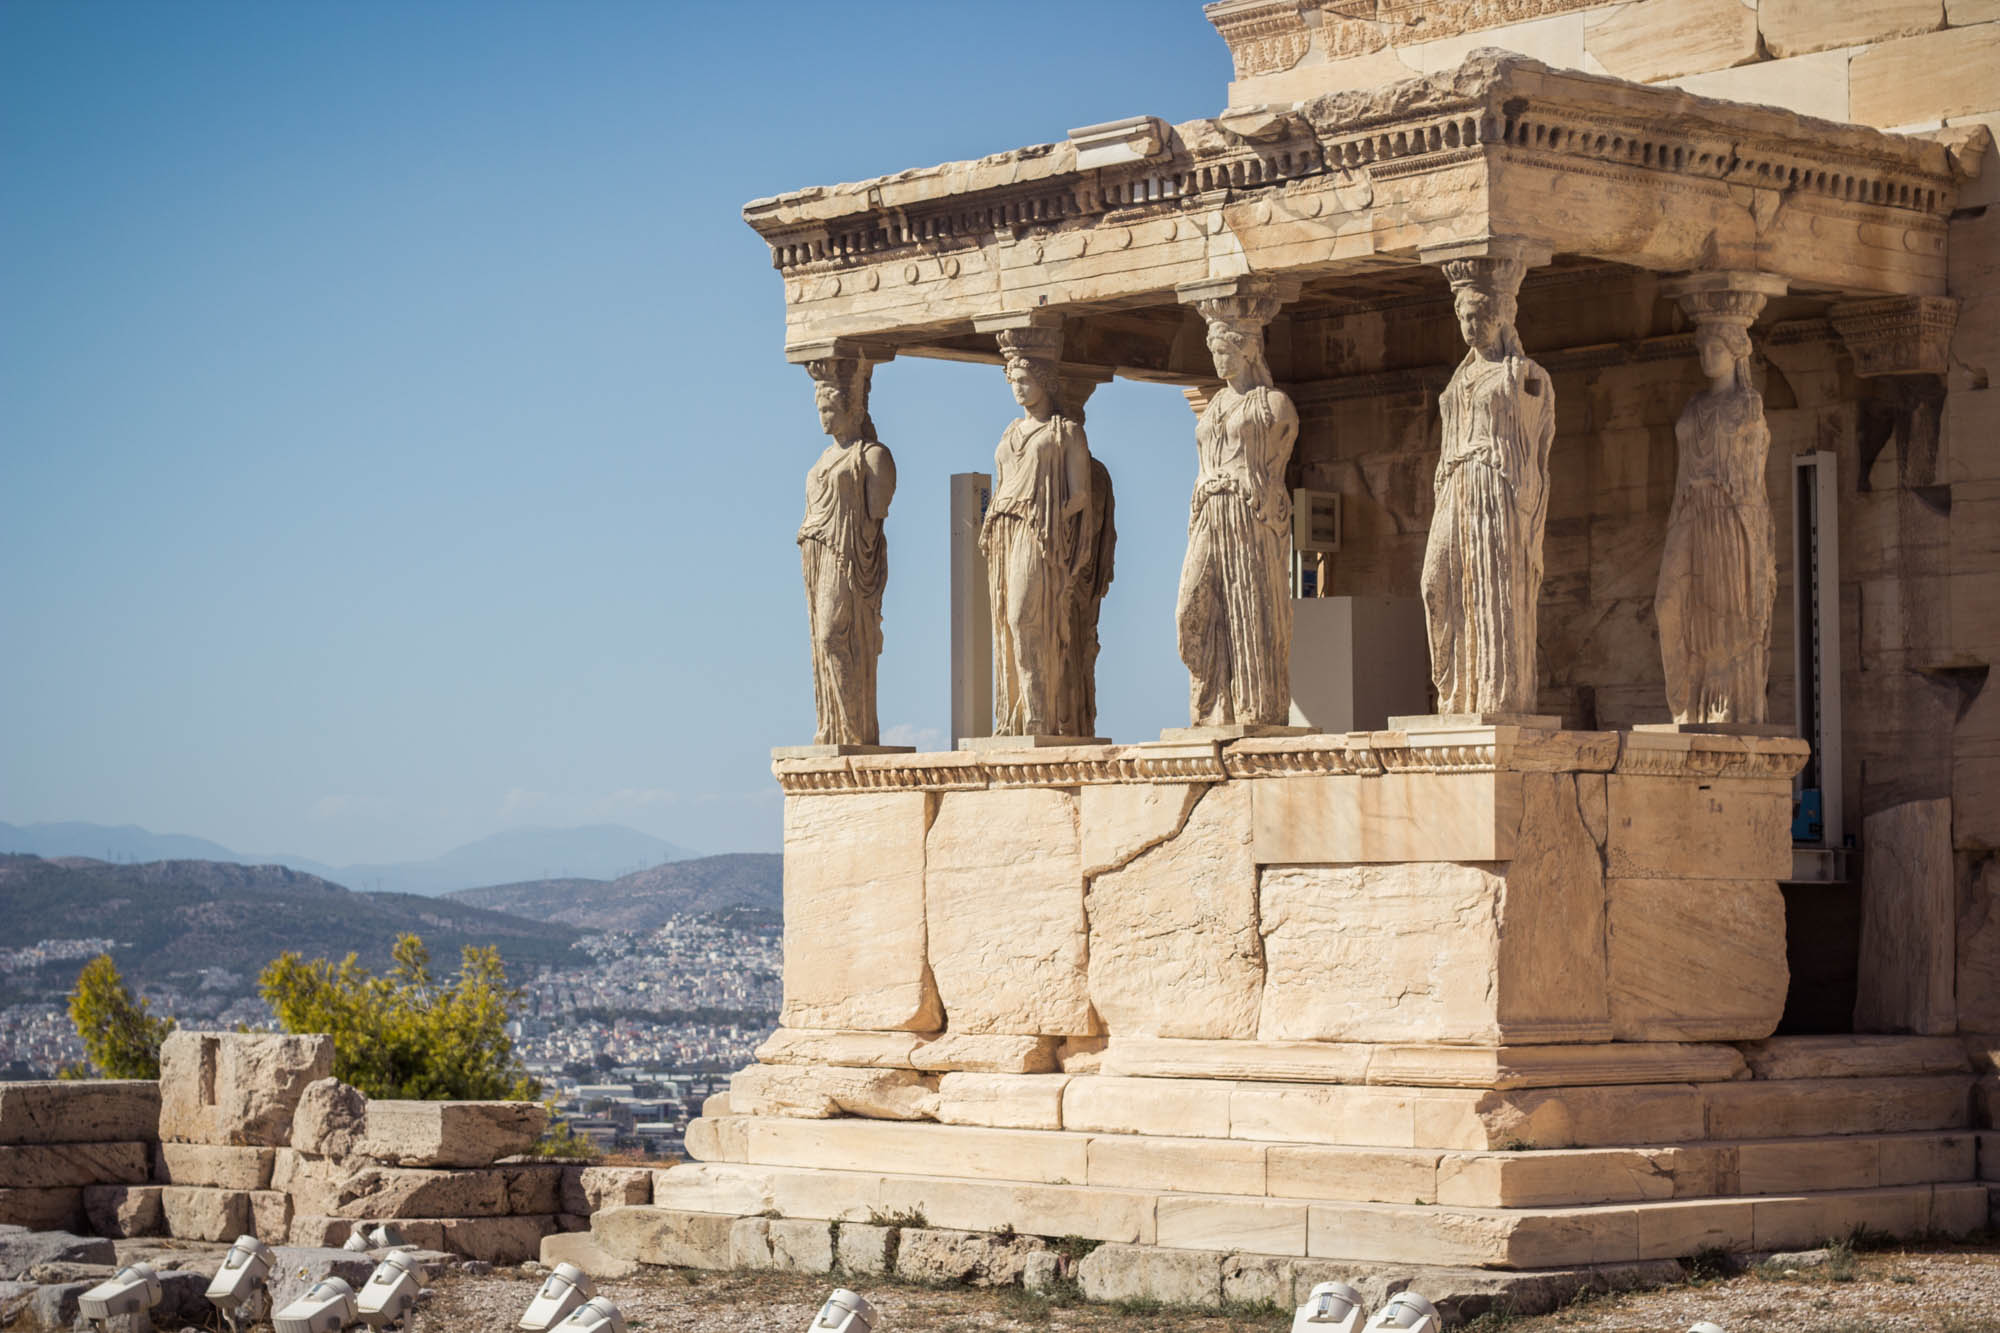 Erechtheion in Acropolis in Athens, Greece